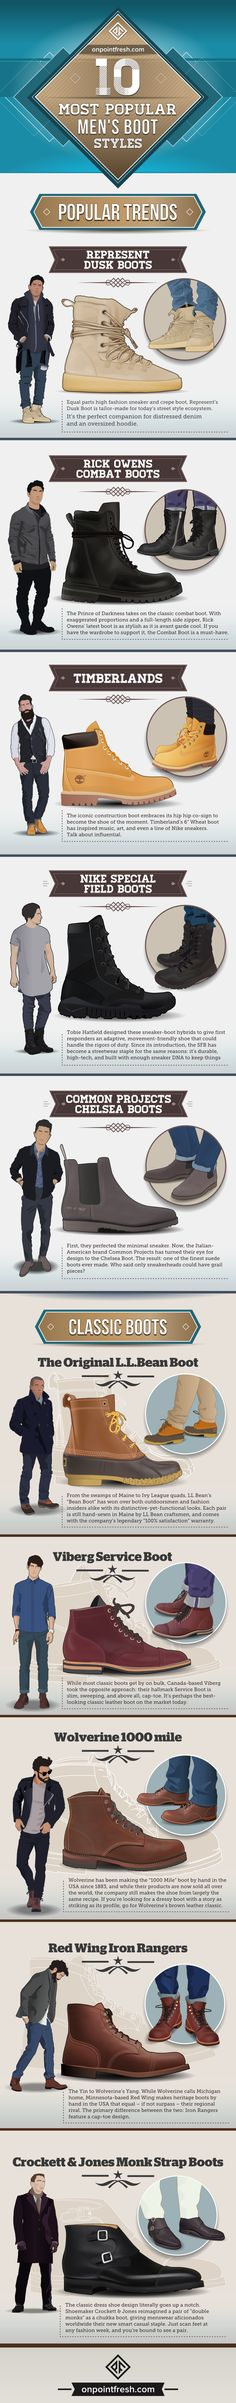 most popular boot styles for men 2017